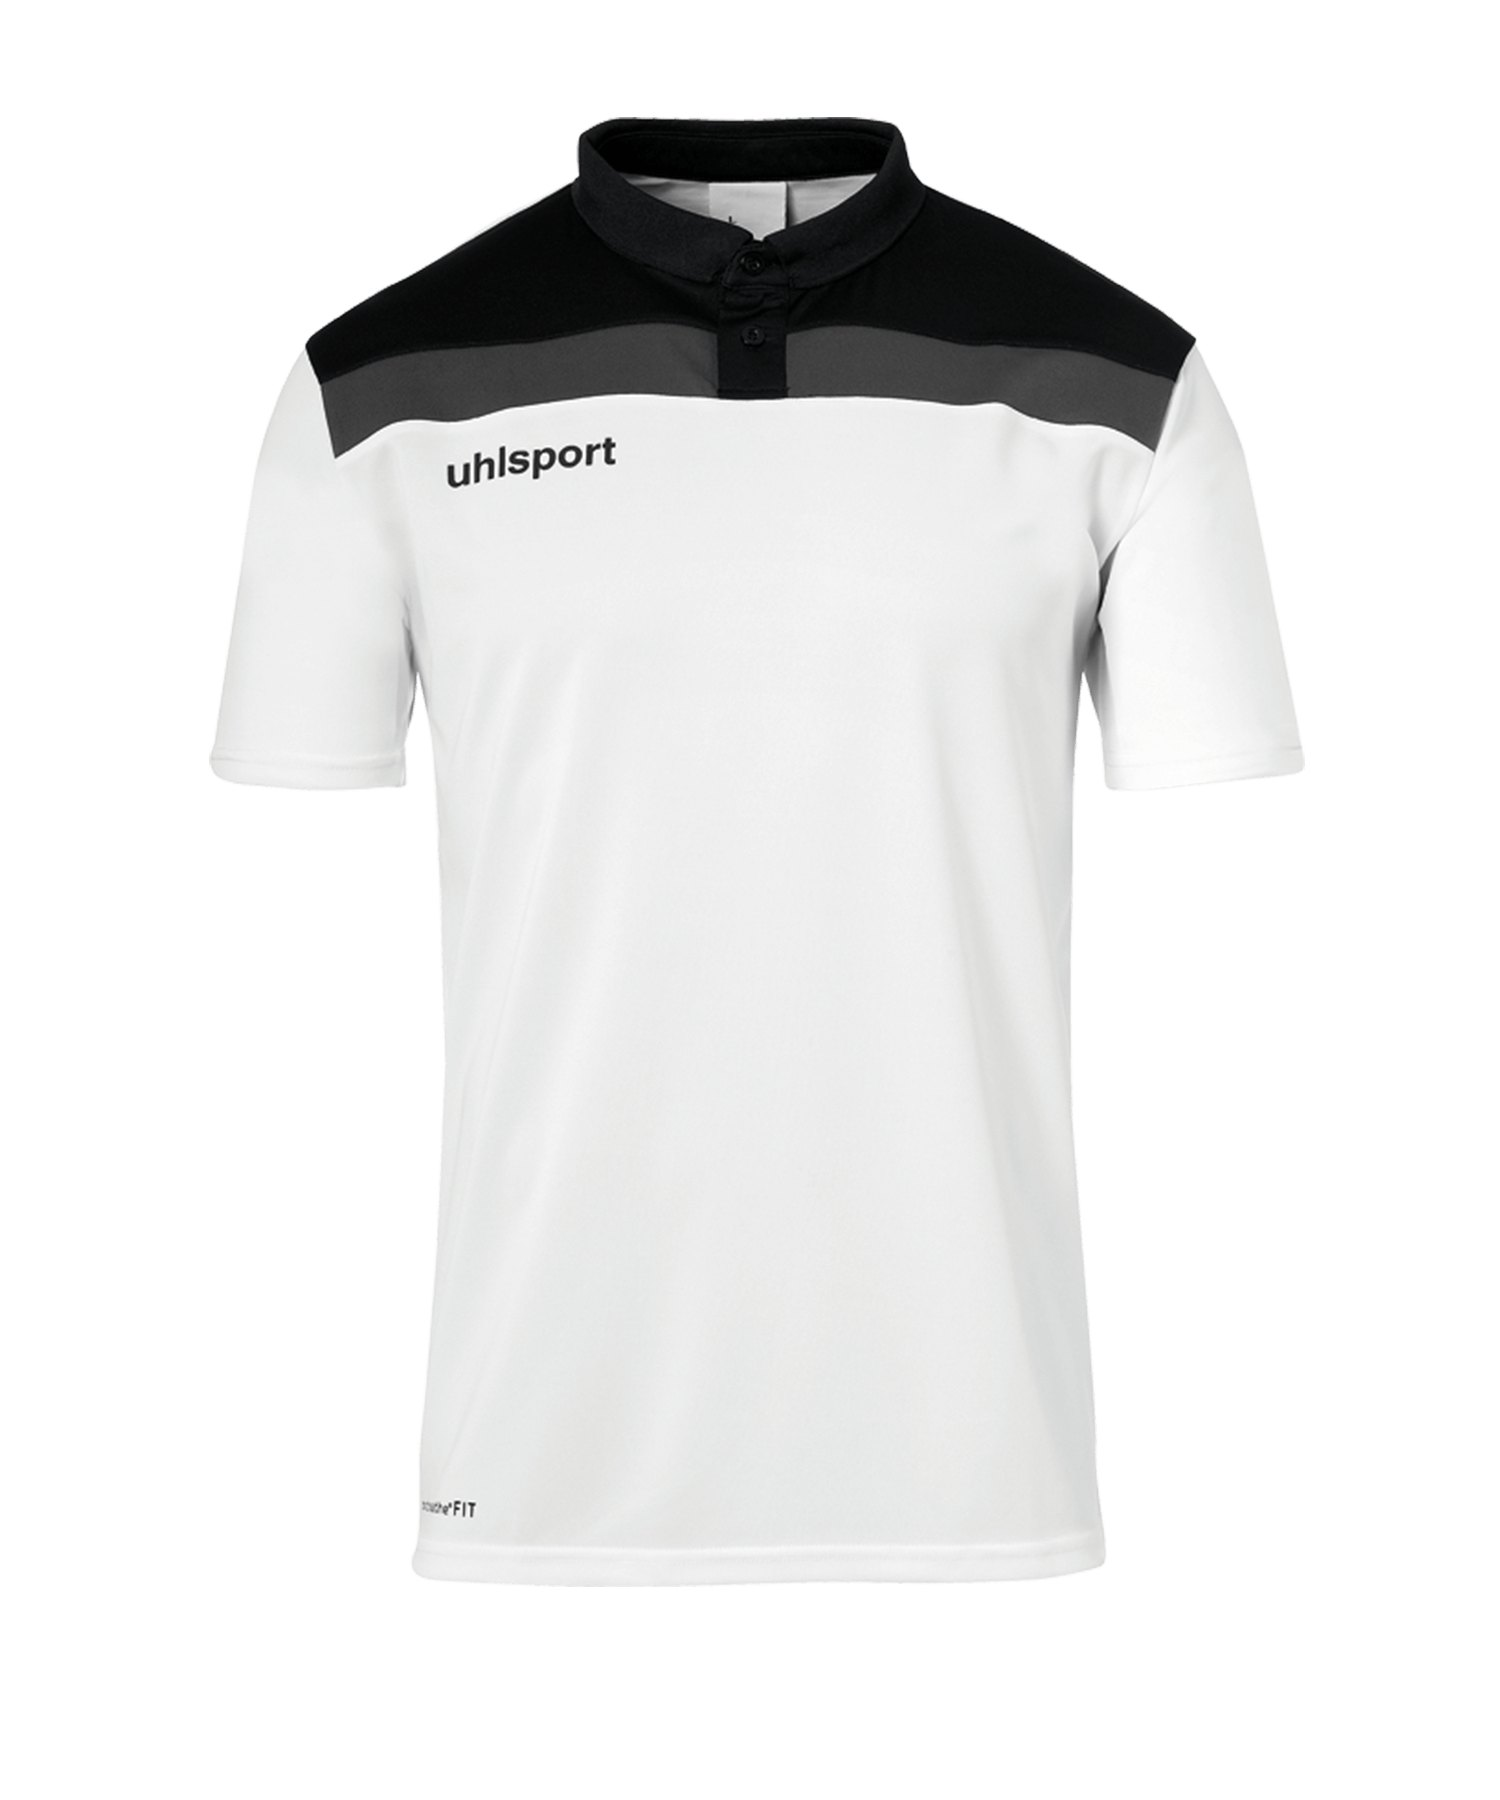 Uhlsport Offense 23 Poloshirt Kids Weiss F02 - weiss